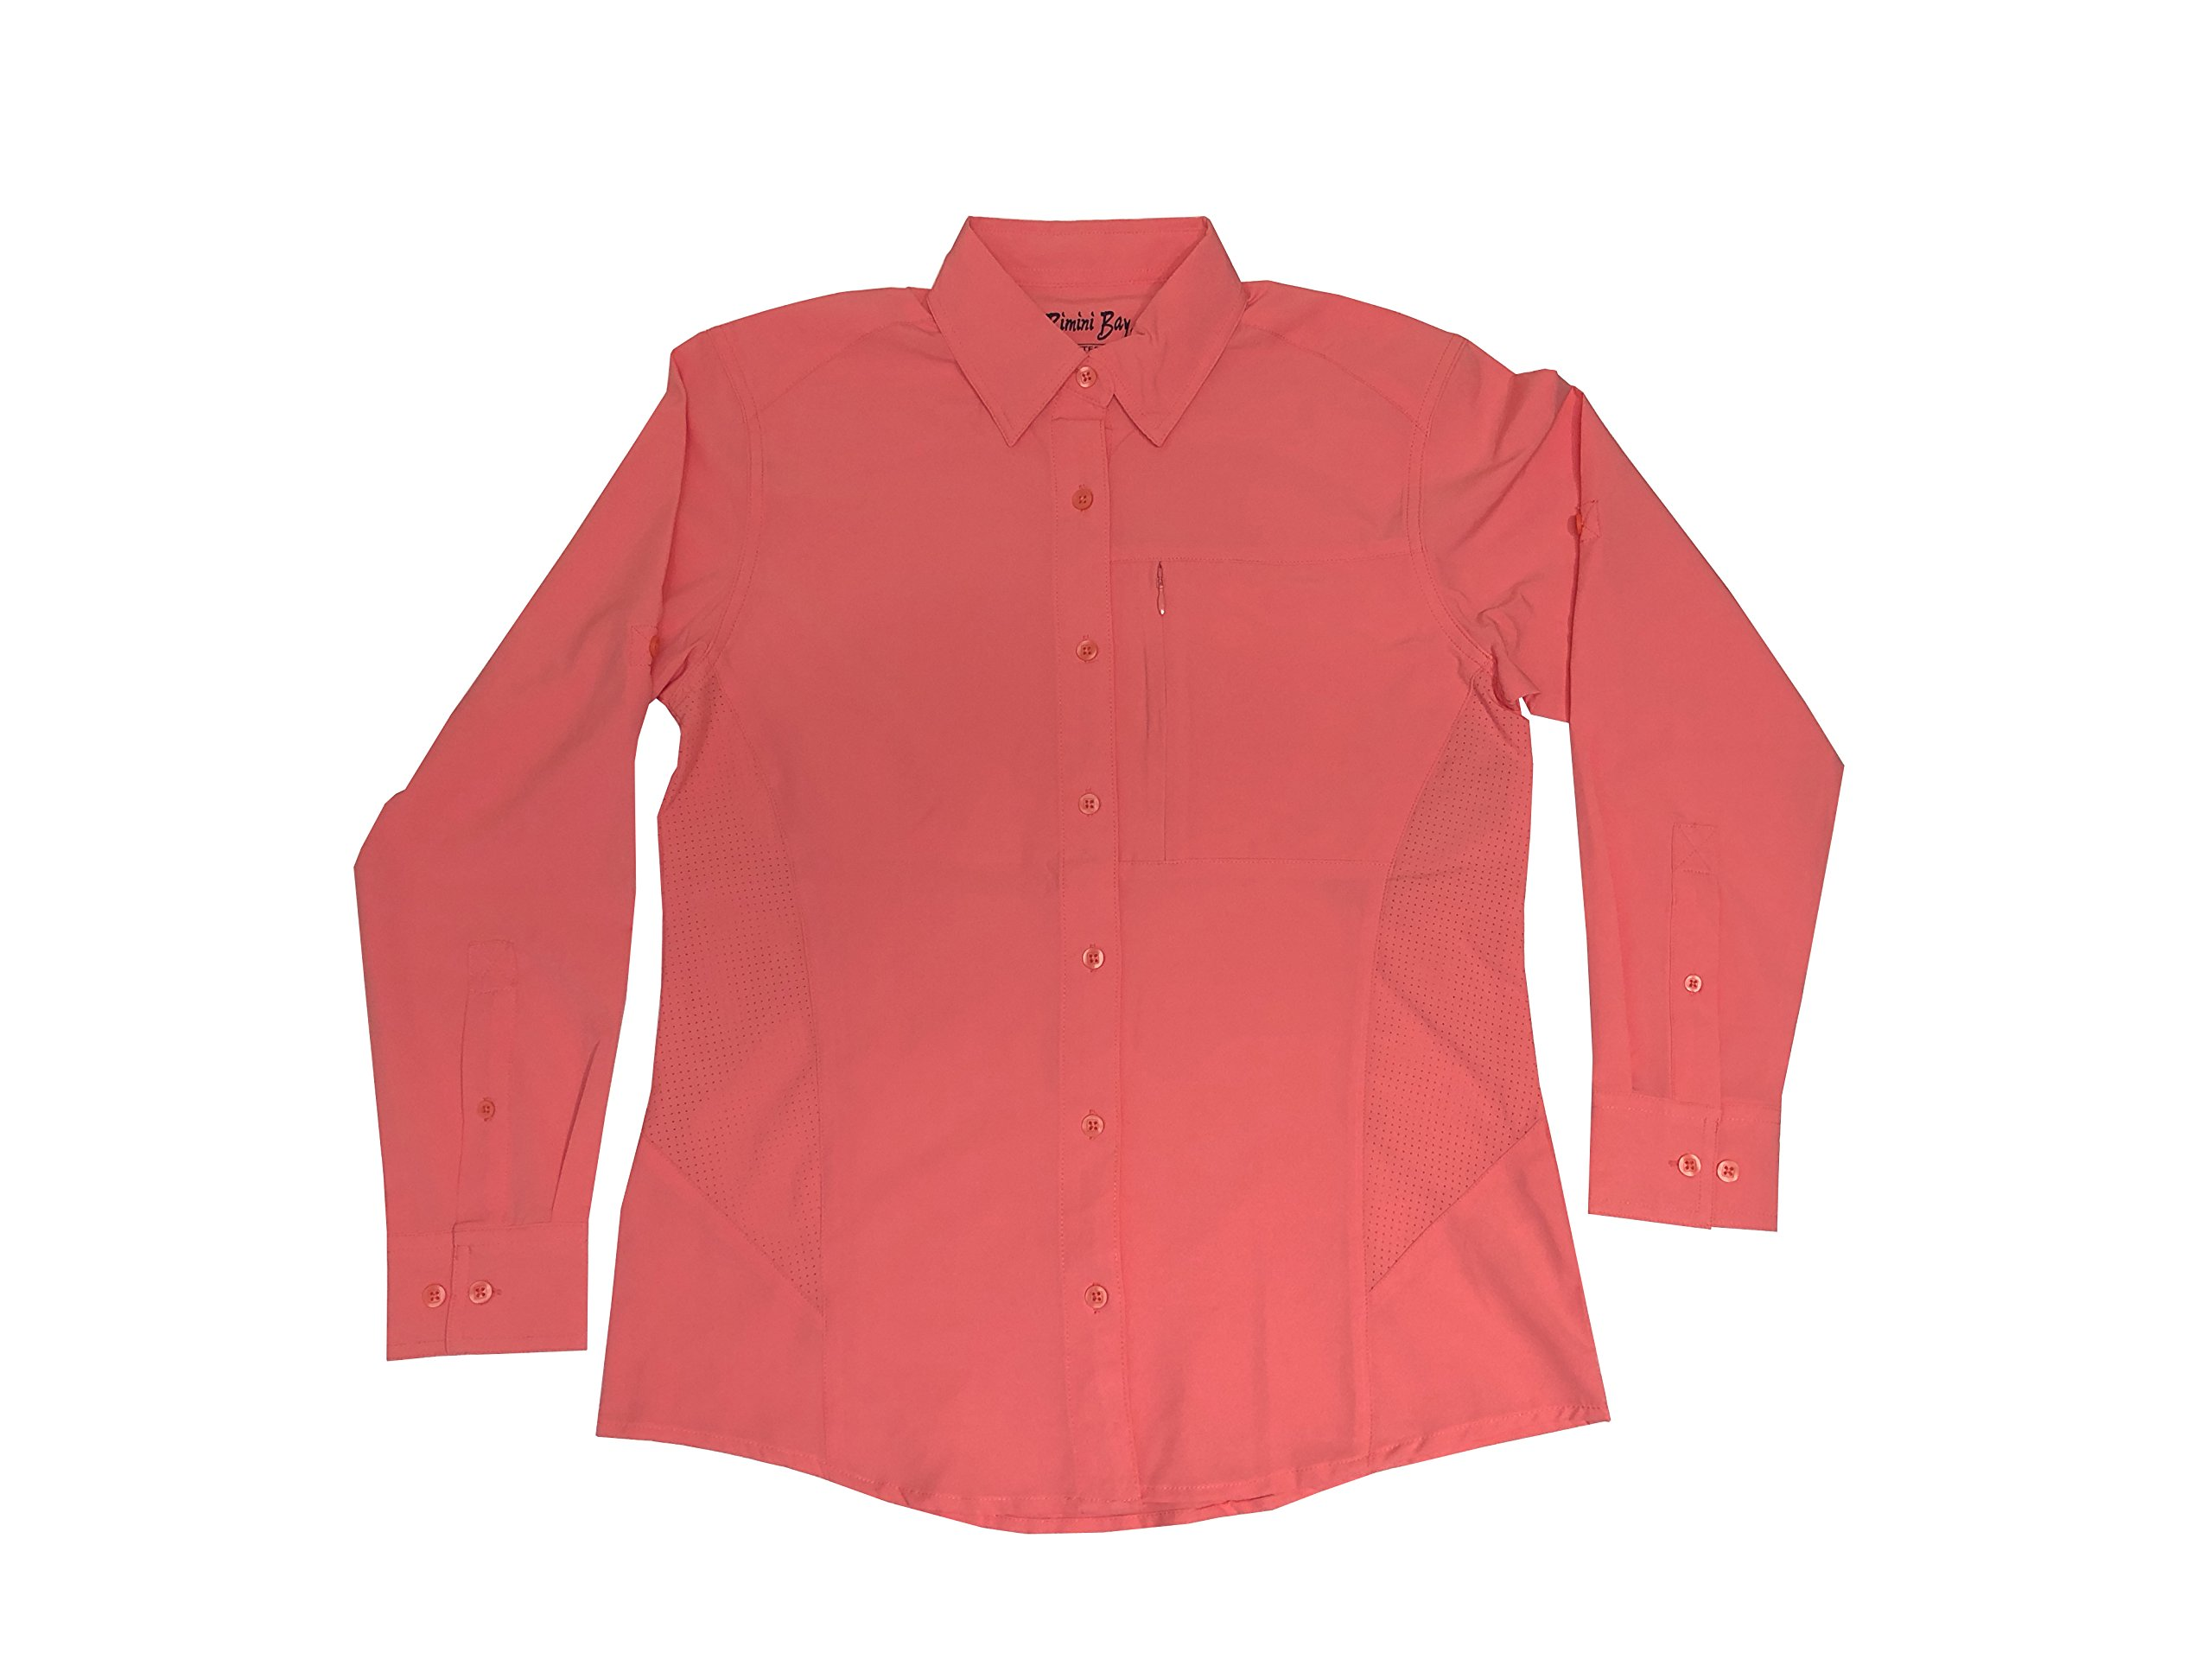 Bimini Bay Outfitters Clearwater Long Sleeve Women's Shirt (Coral, Large) by Bimini Bay Outfitters